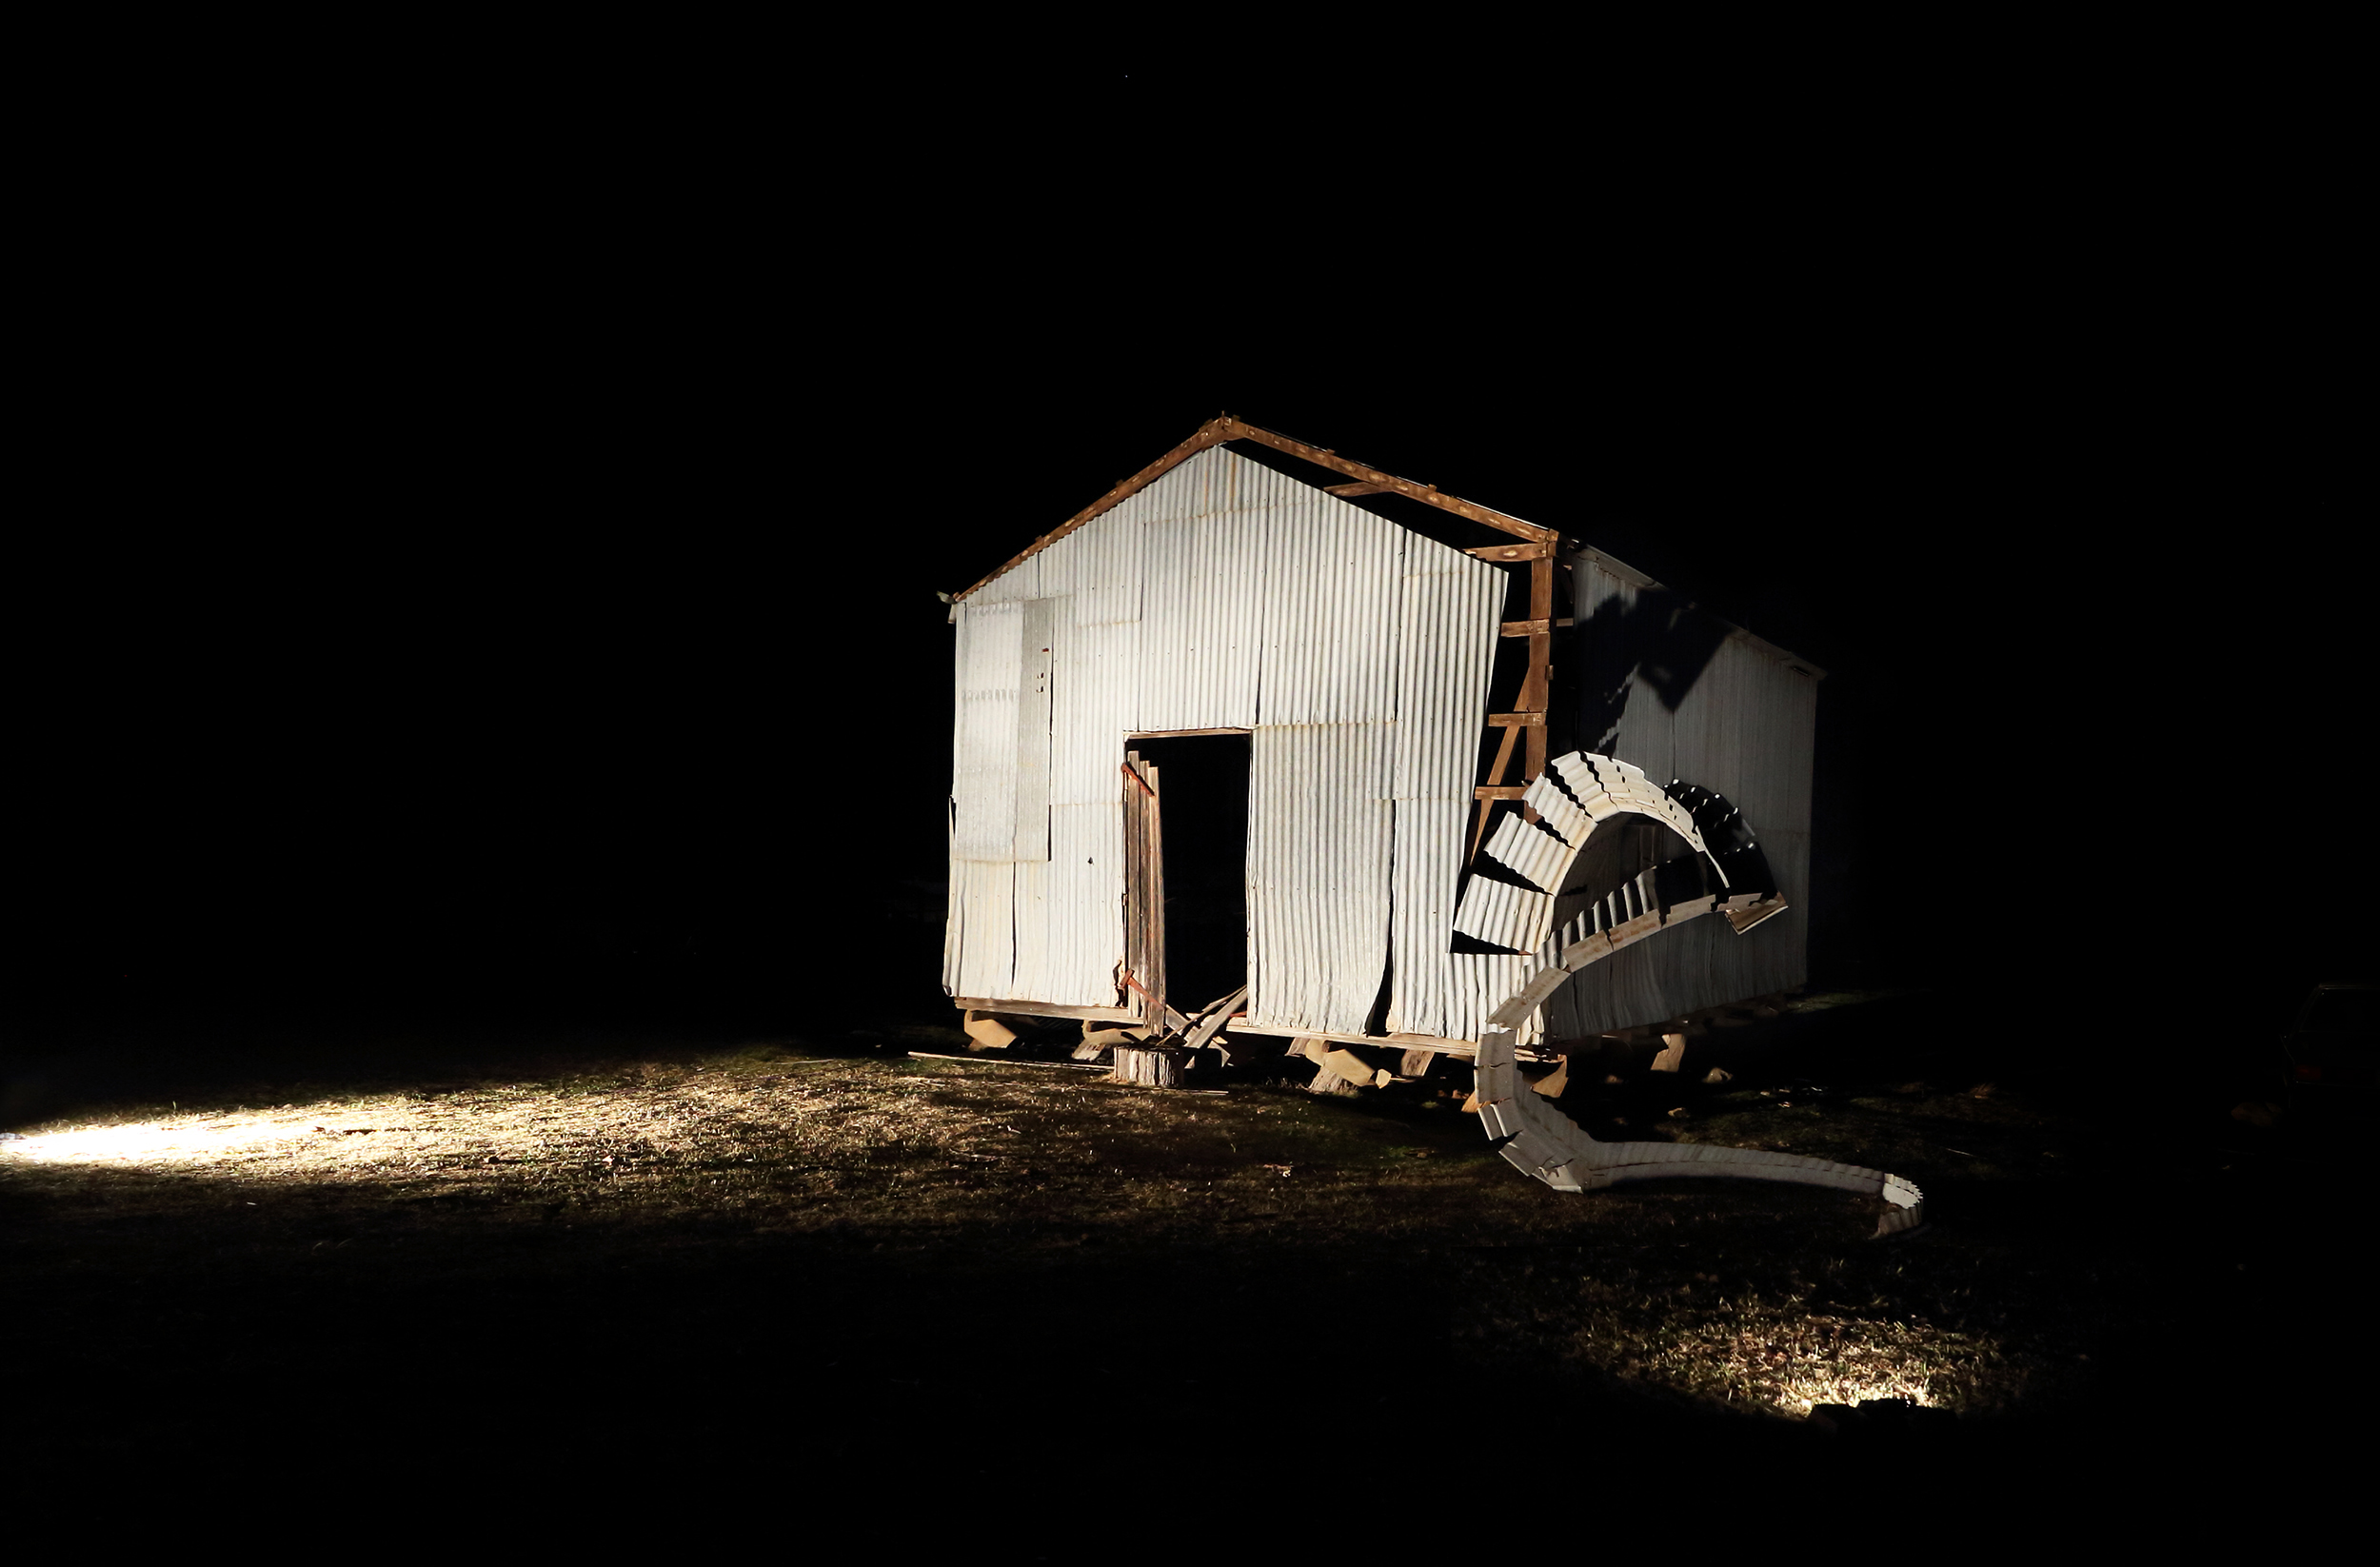 Fall to land - Shed cut - Wright Farm - 2014